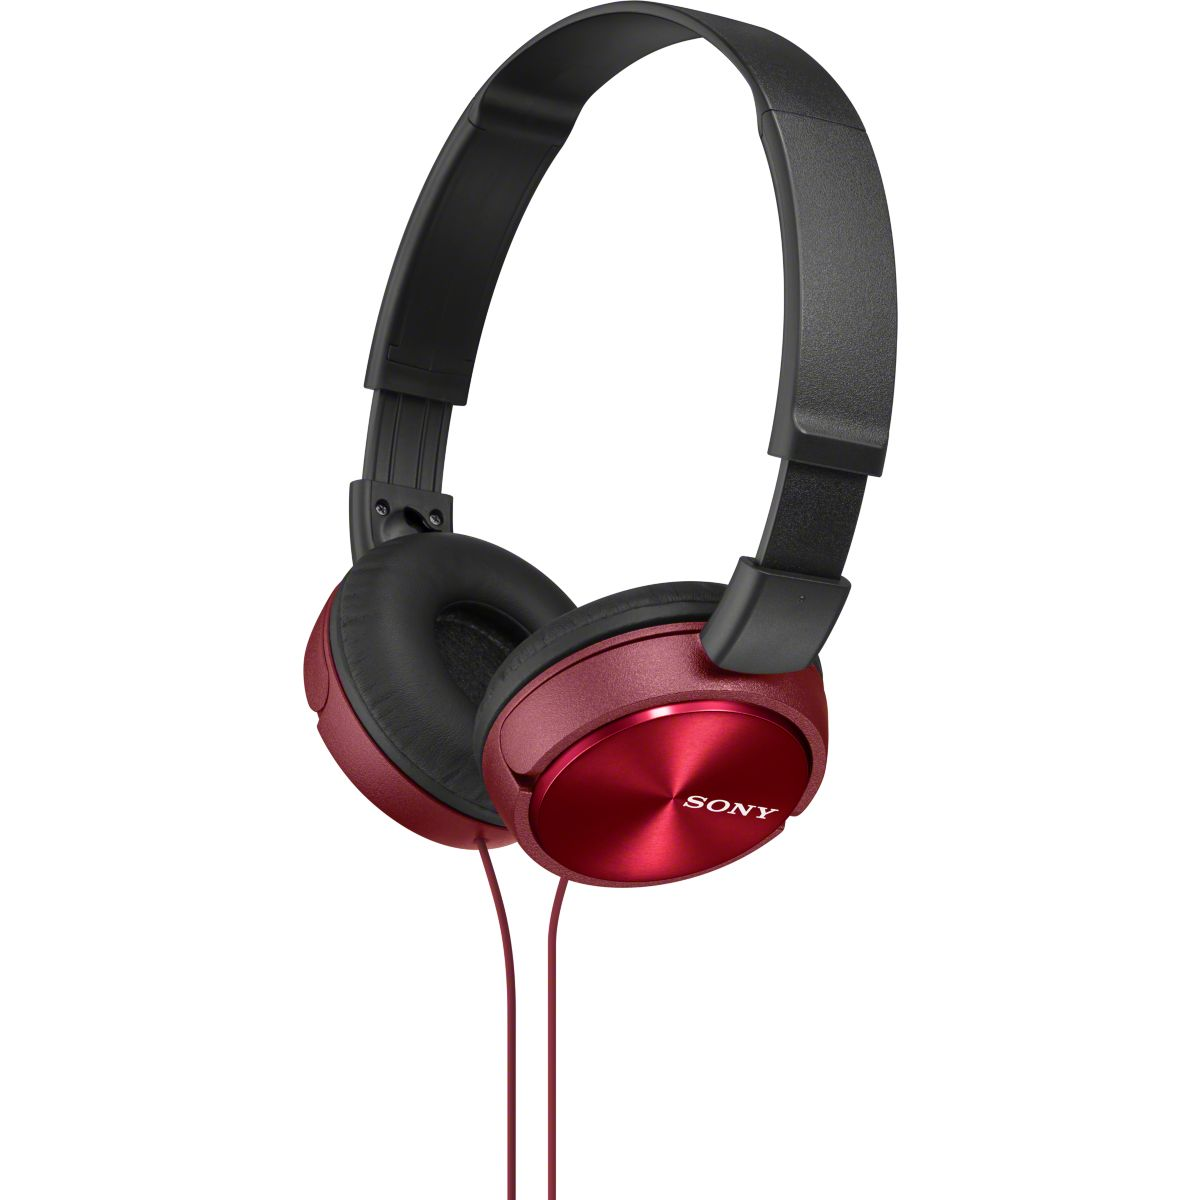 Casque audio sony mdrzx310 rouge (photo)